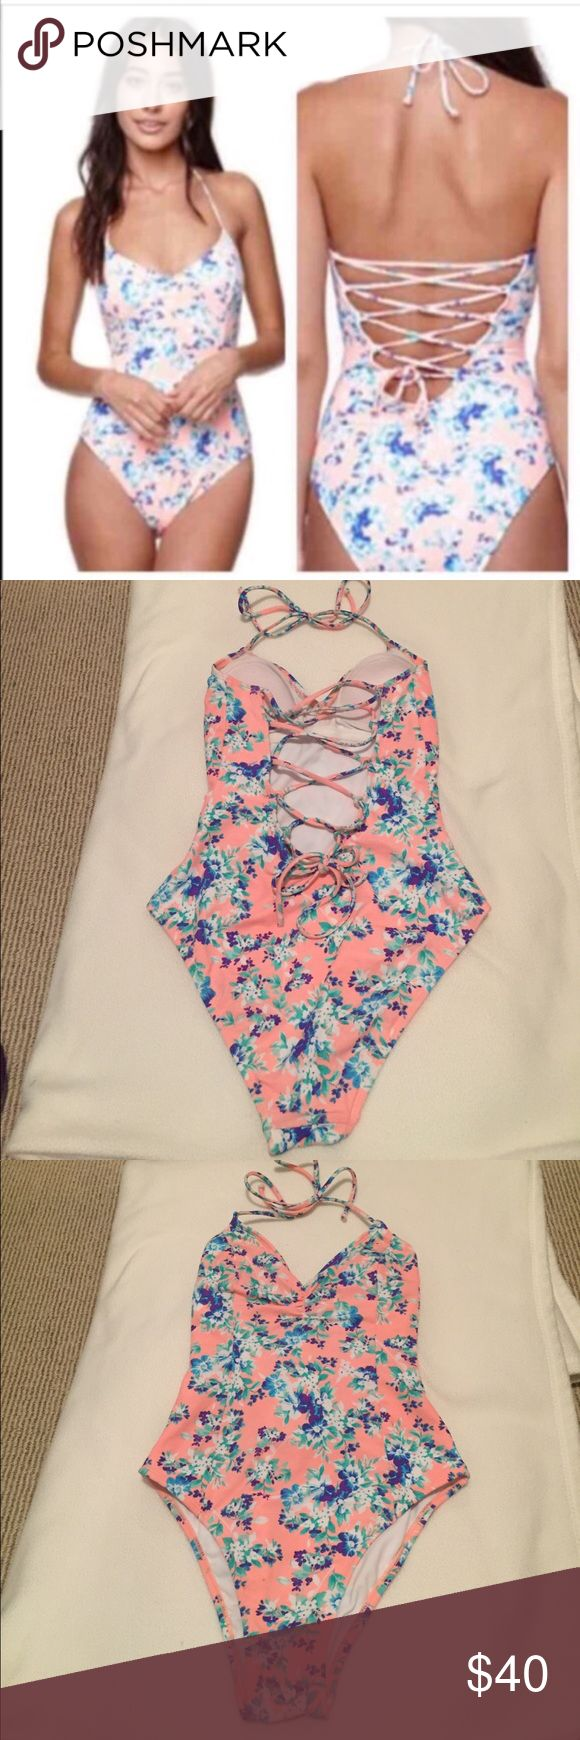 La Hearts Lace Up One Piece Light peach color with flowers. Lace up back. V neck and gathering at the bust. Very cute! Selling because too small for me. Light padding in the top. Willing to negotiate LA Hearts Swim One Pieces